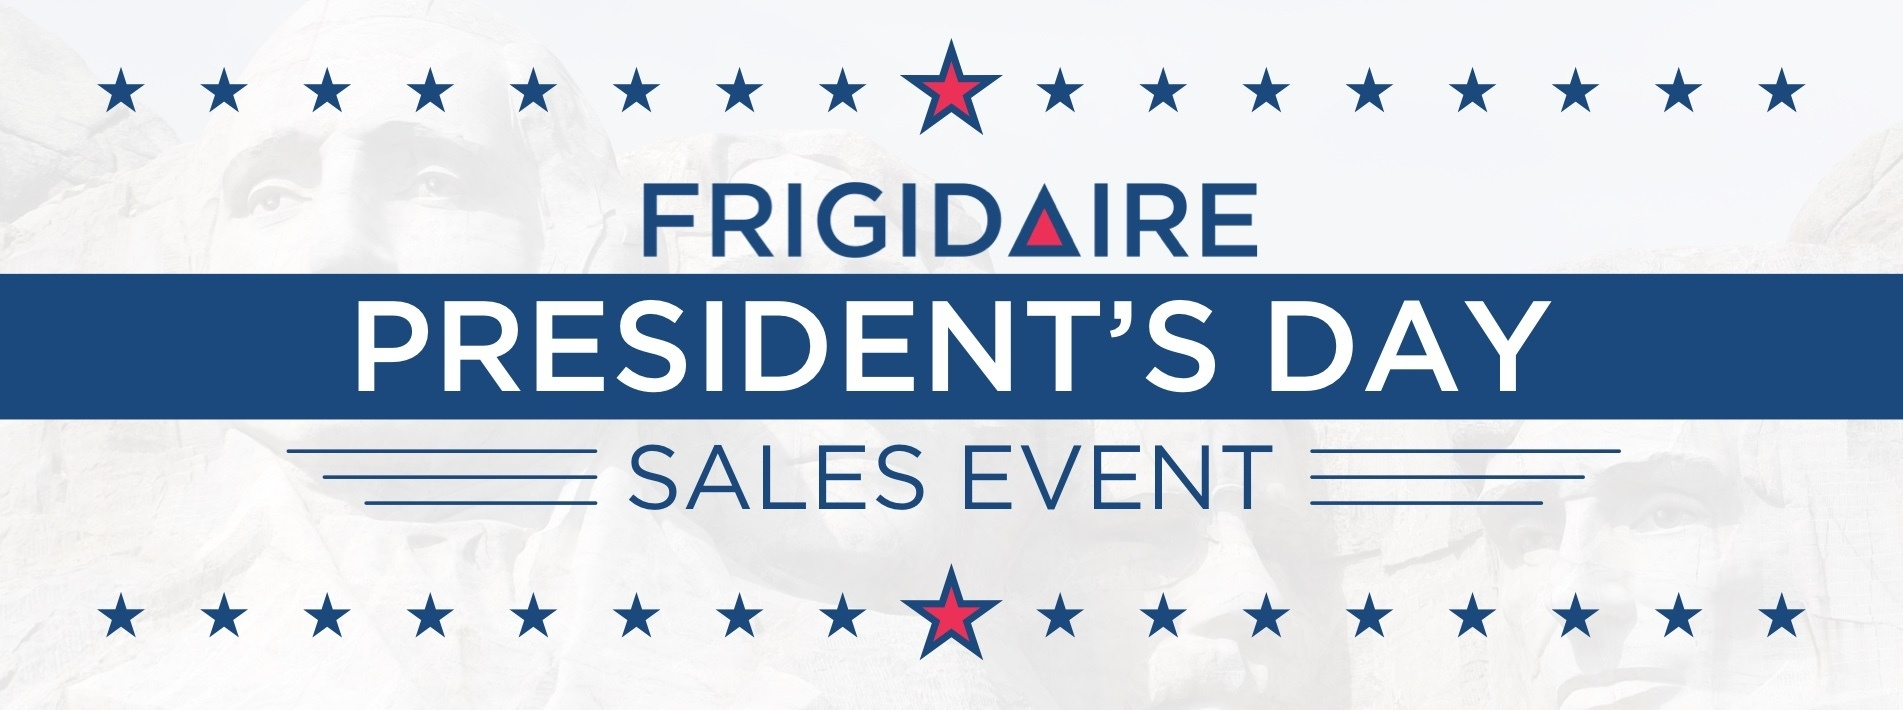 Frigidaire-Presidents-Day-2021